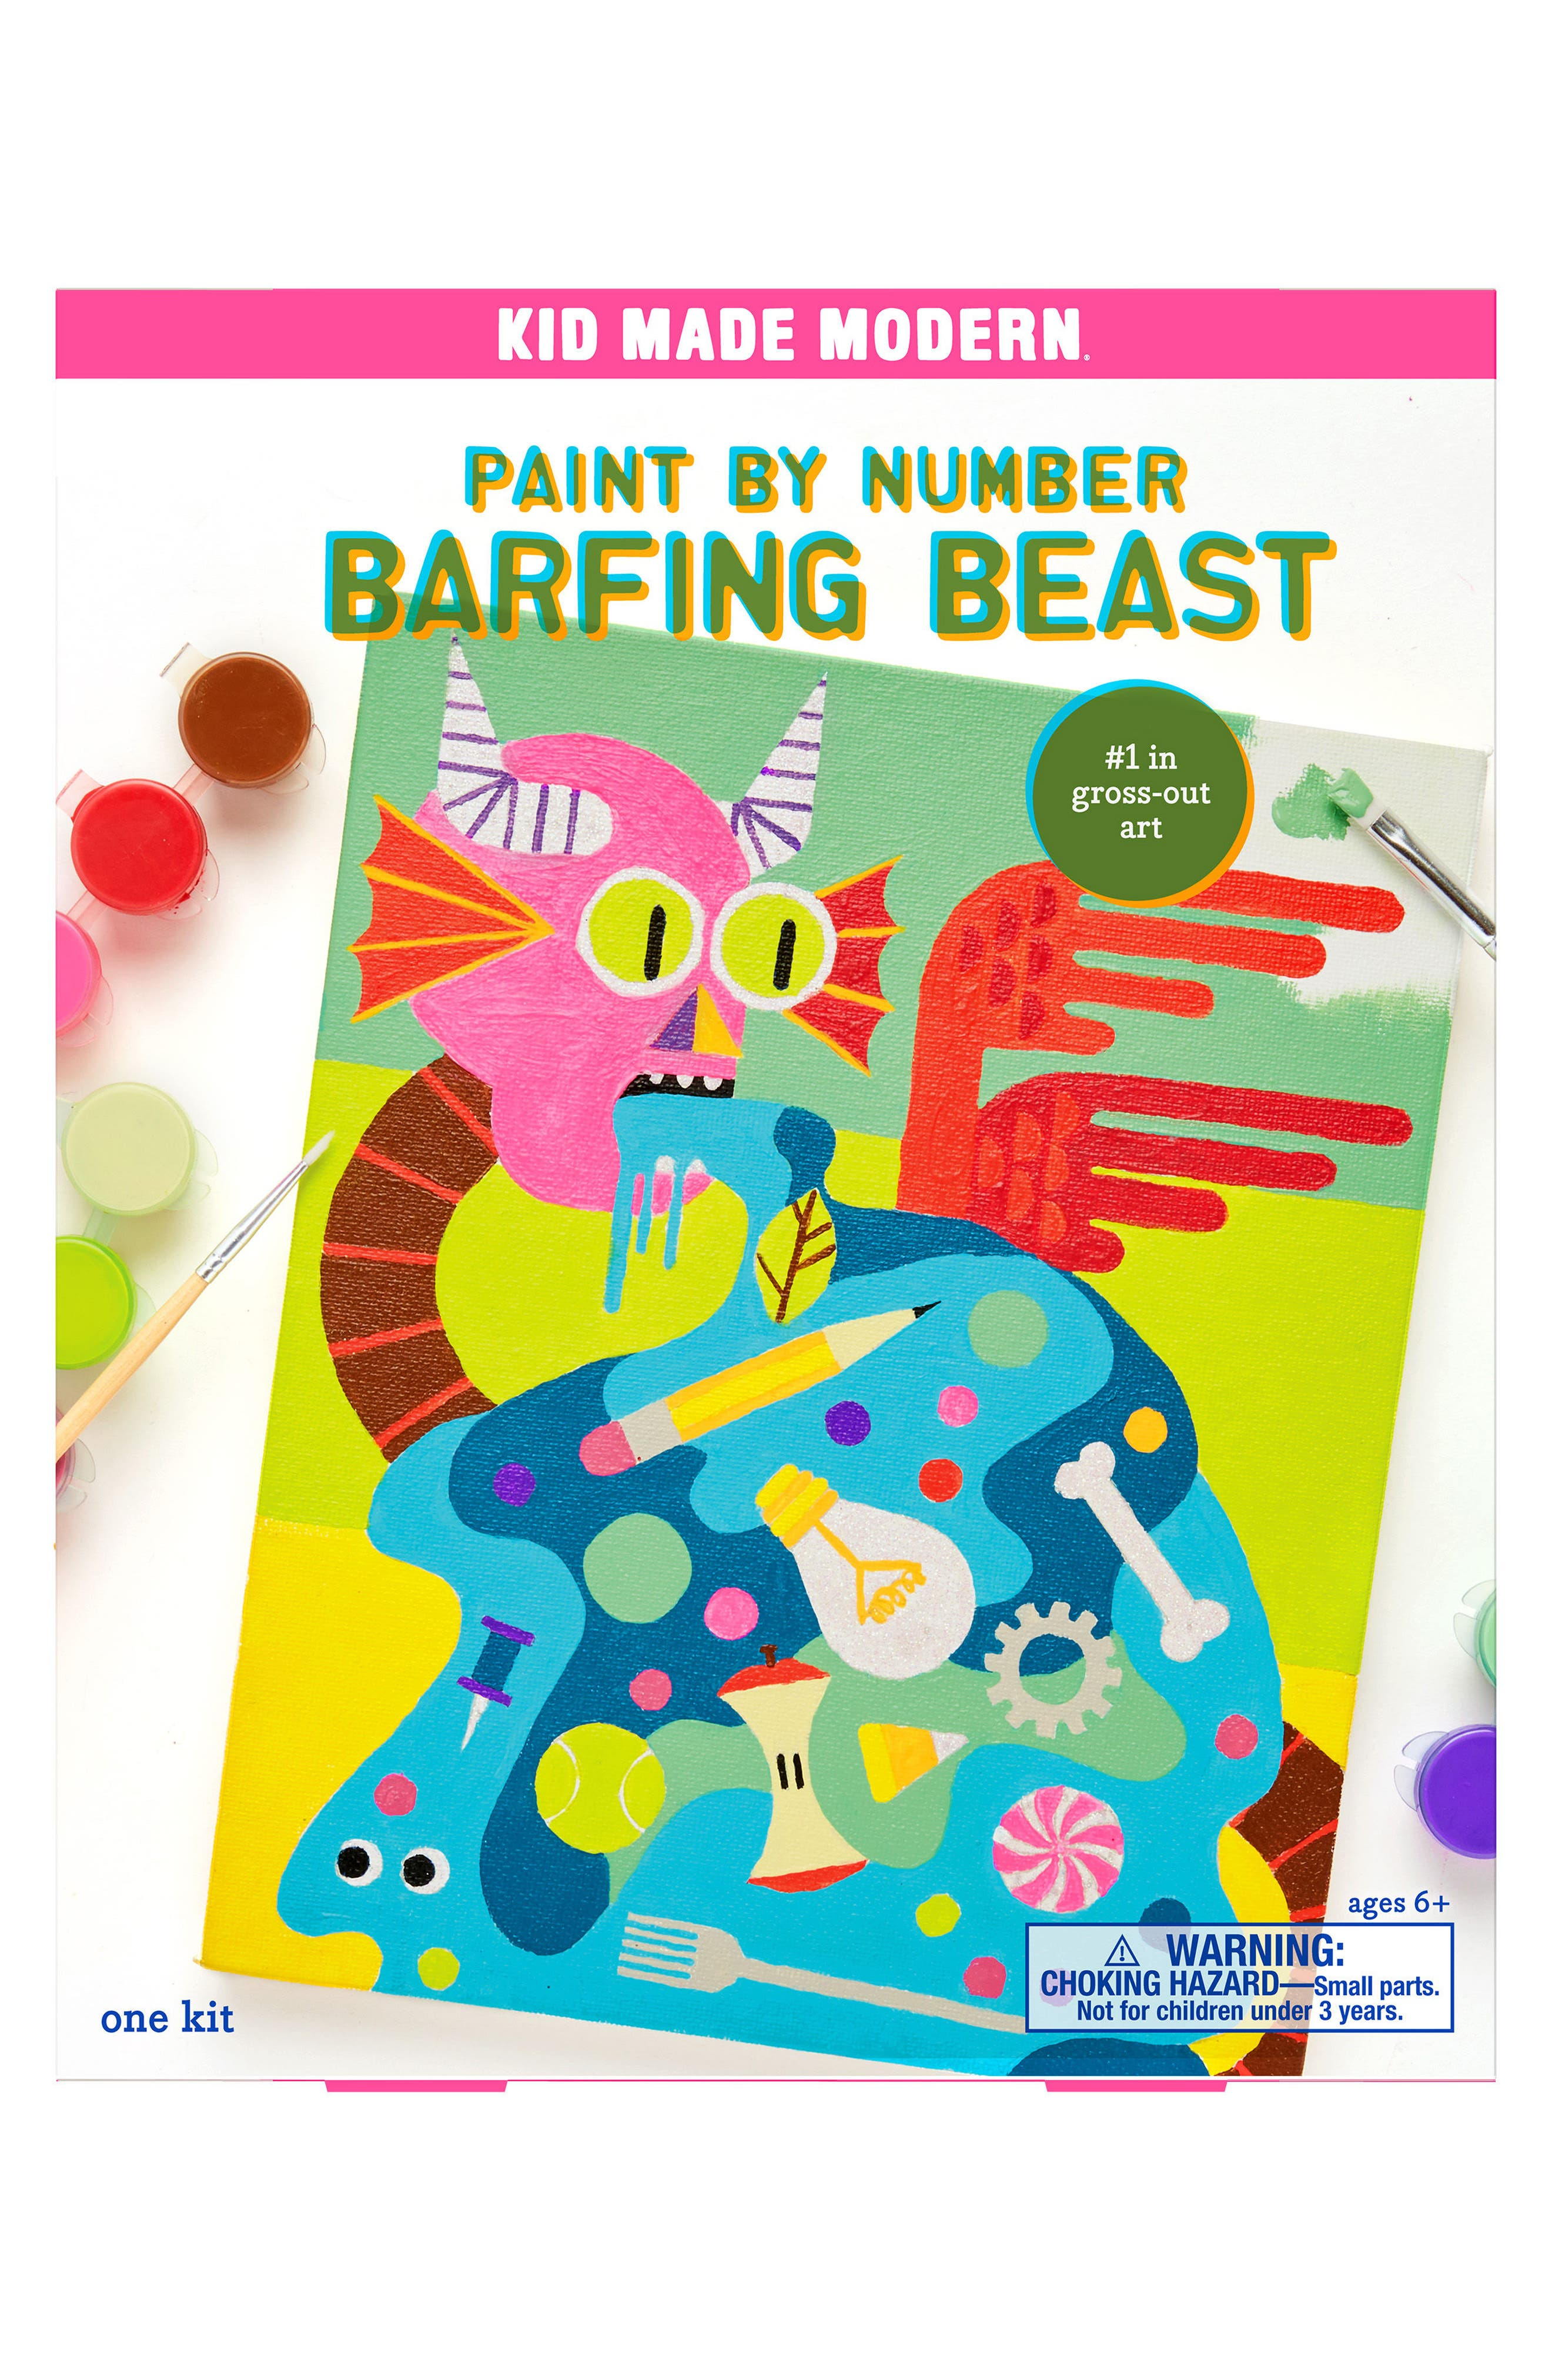 Alternate Image 1 Selected - Kid Made Modern Barfing Beast Paint by Number Kit